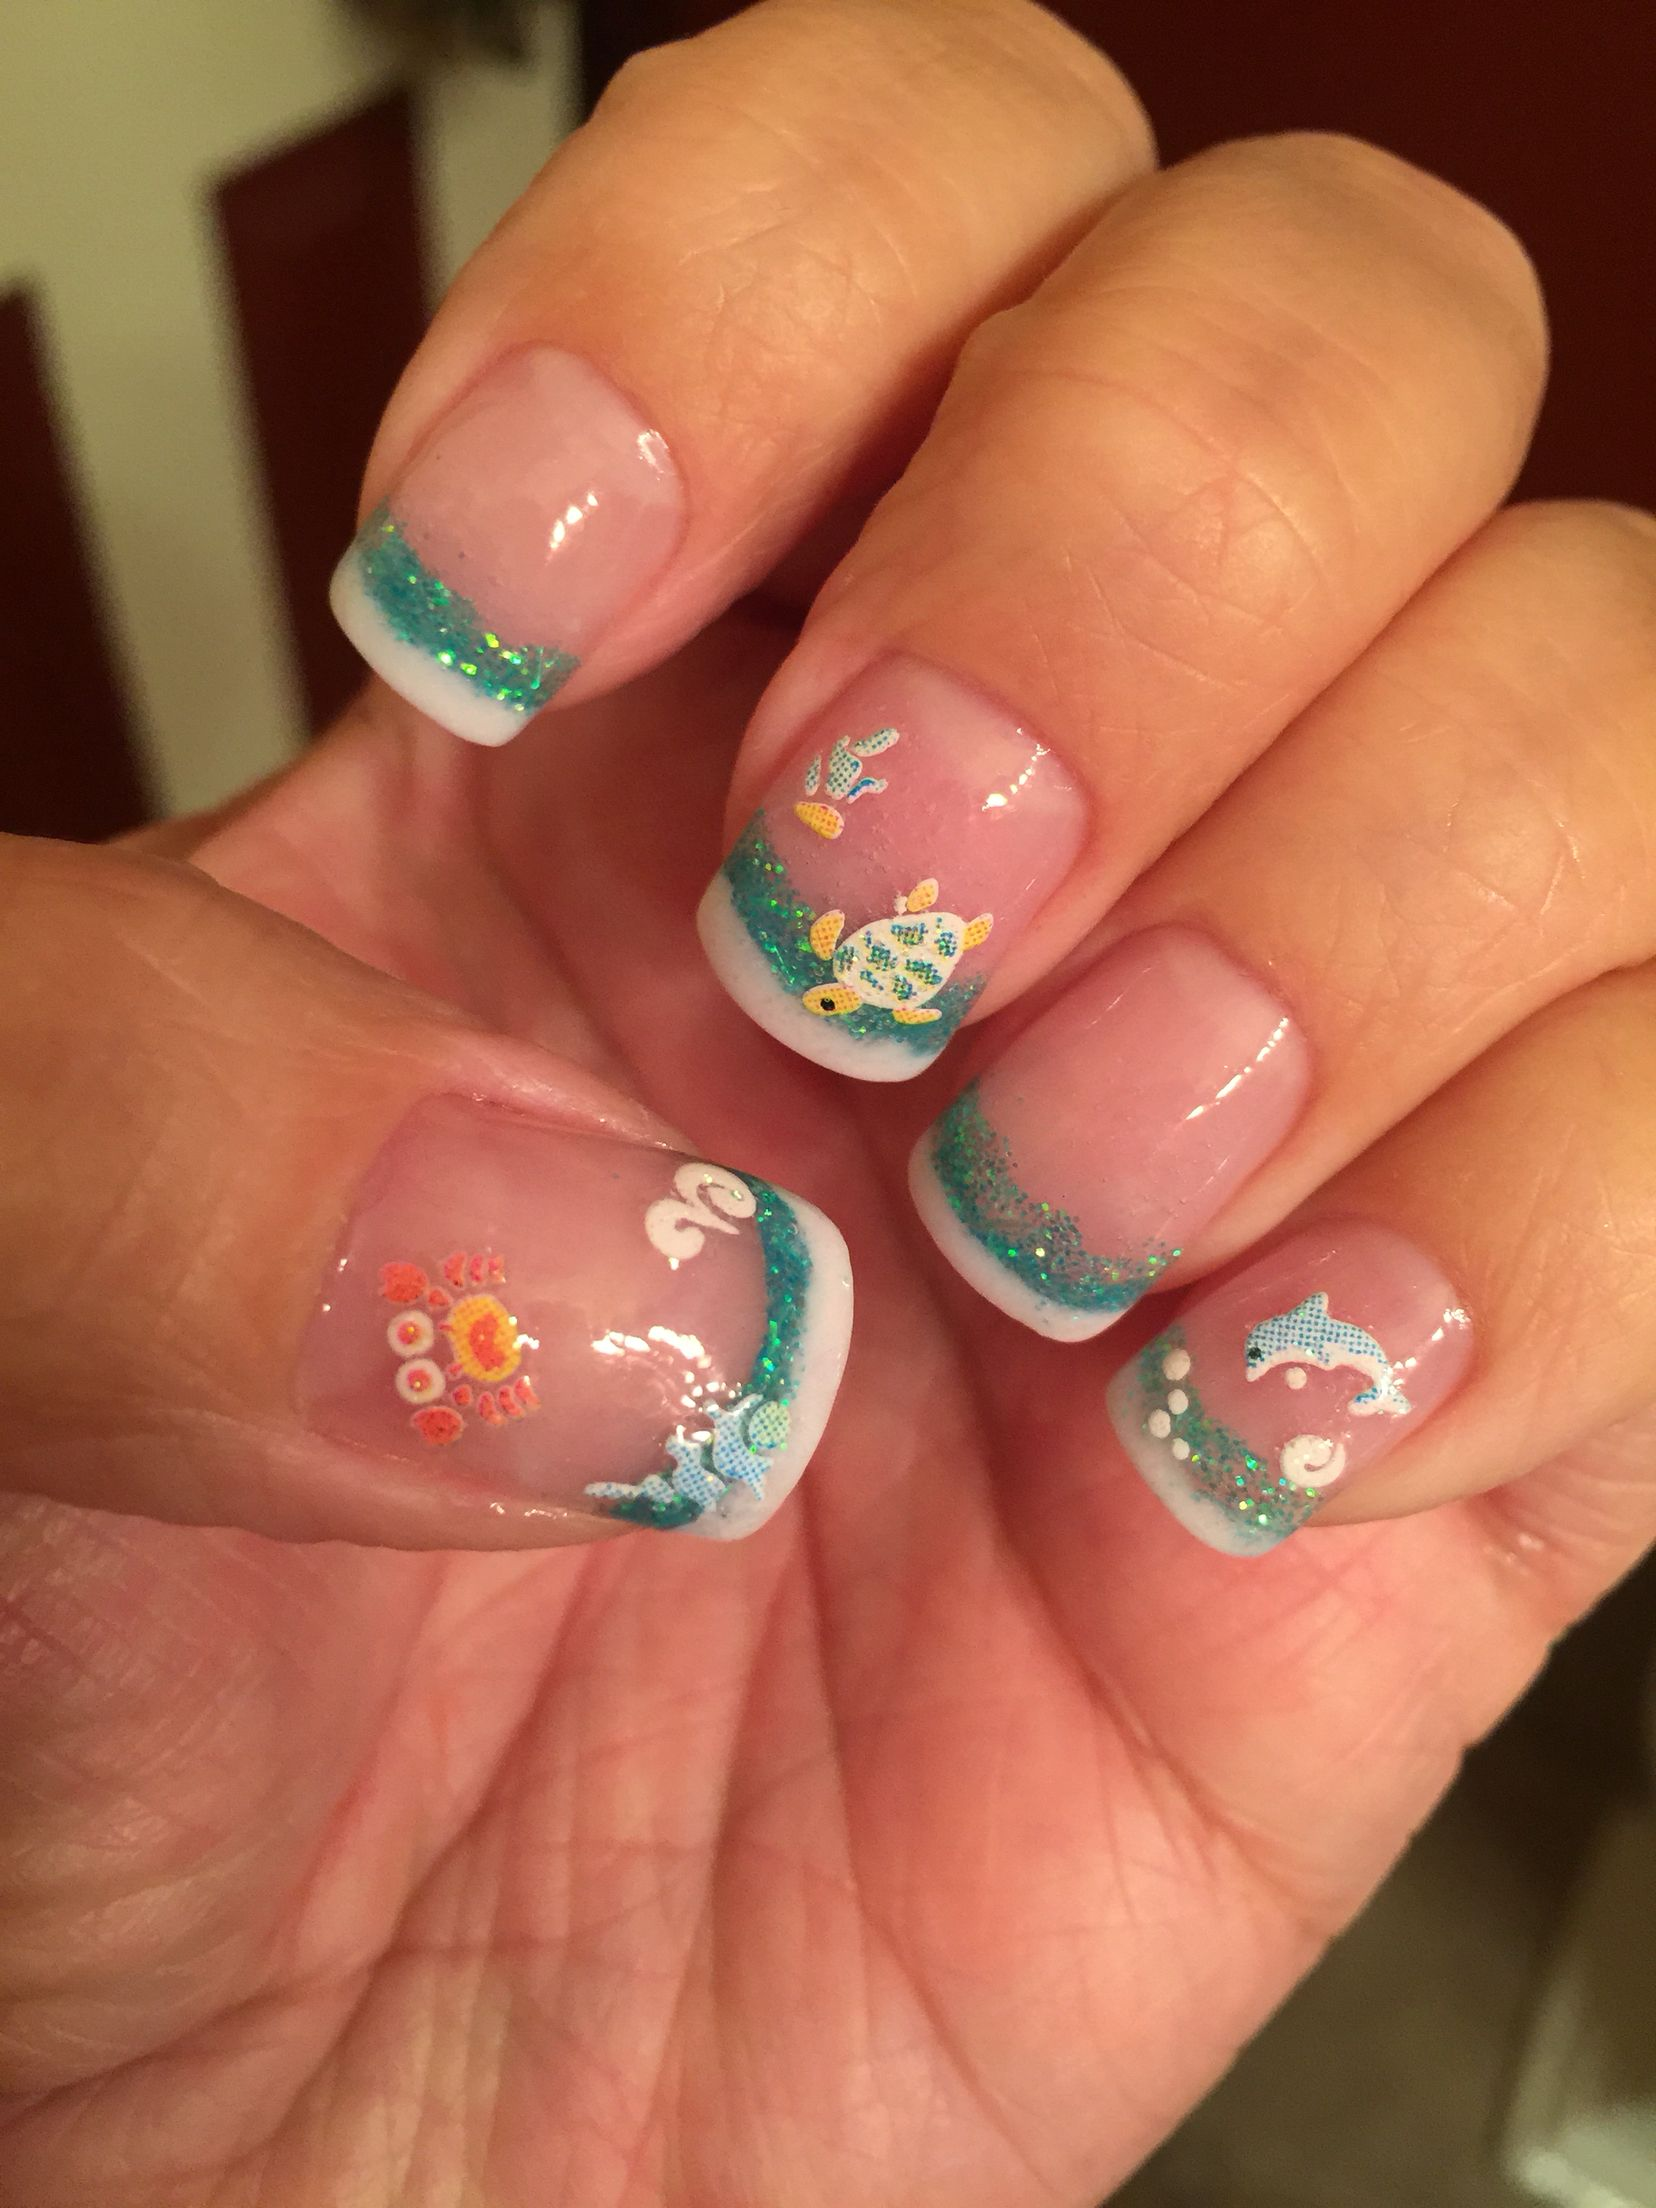 Fun Caribbean nails for my cruise!!! | Make-Up & Nails | Pinterest ...